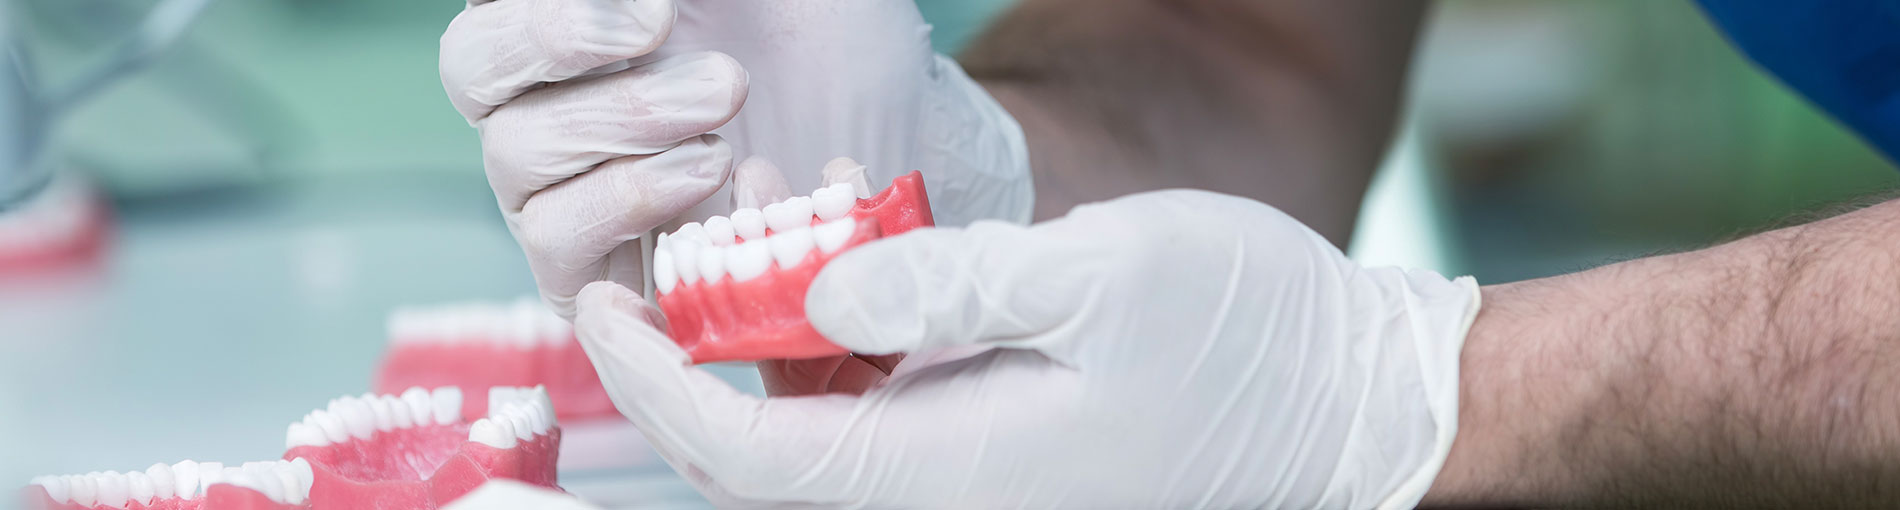 Dental Implants and Bone Grafting